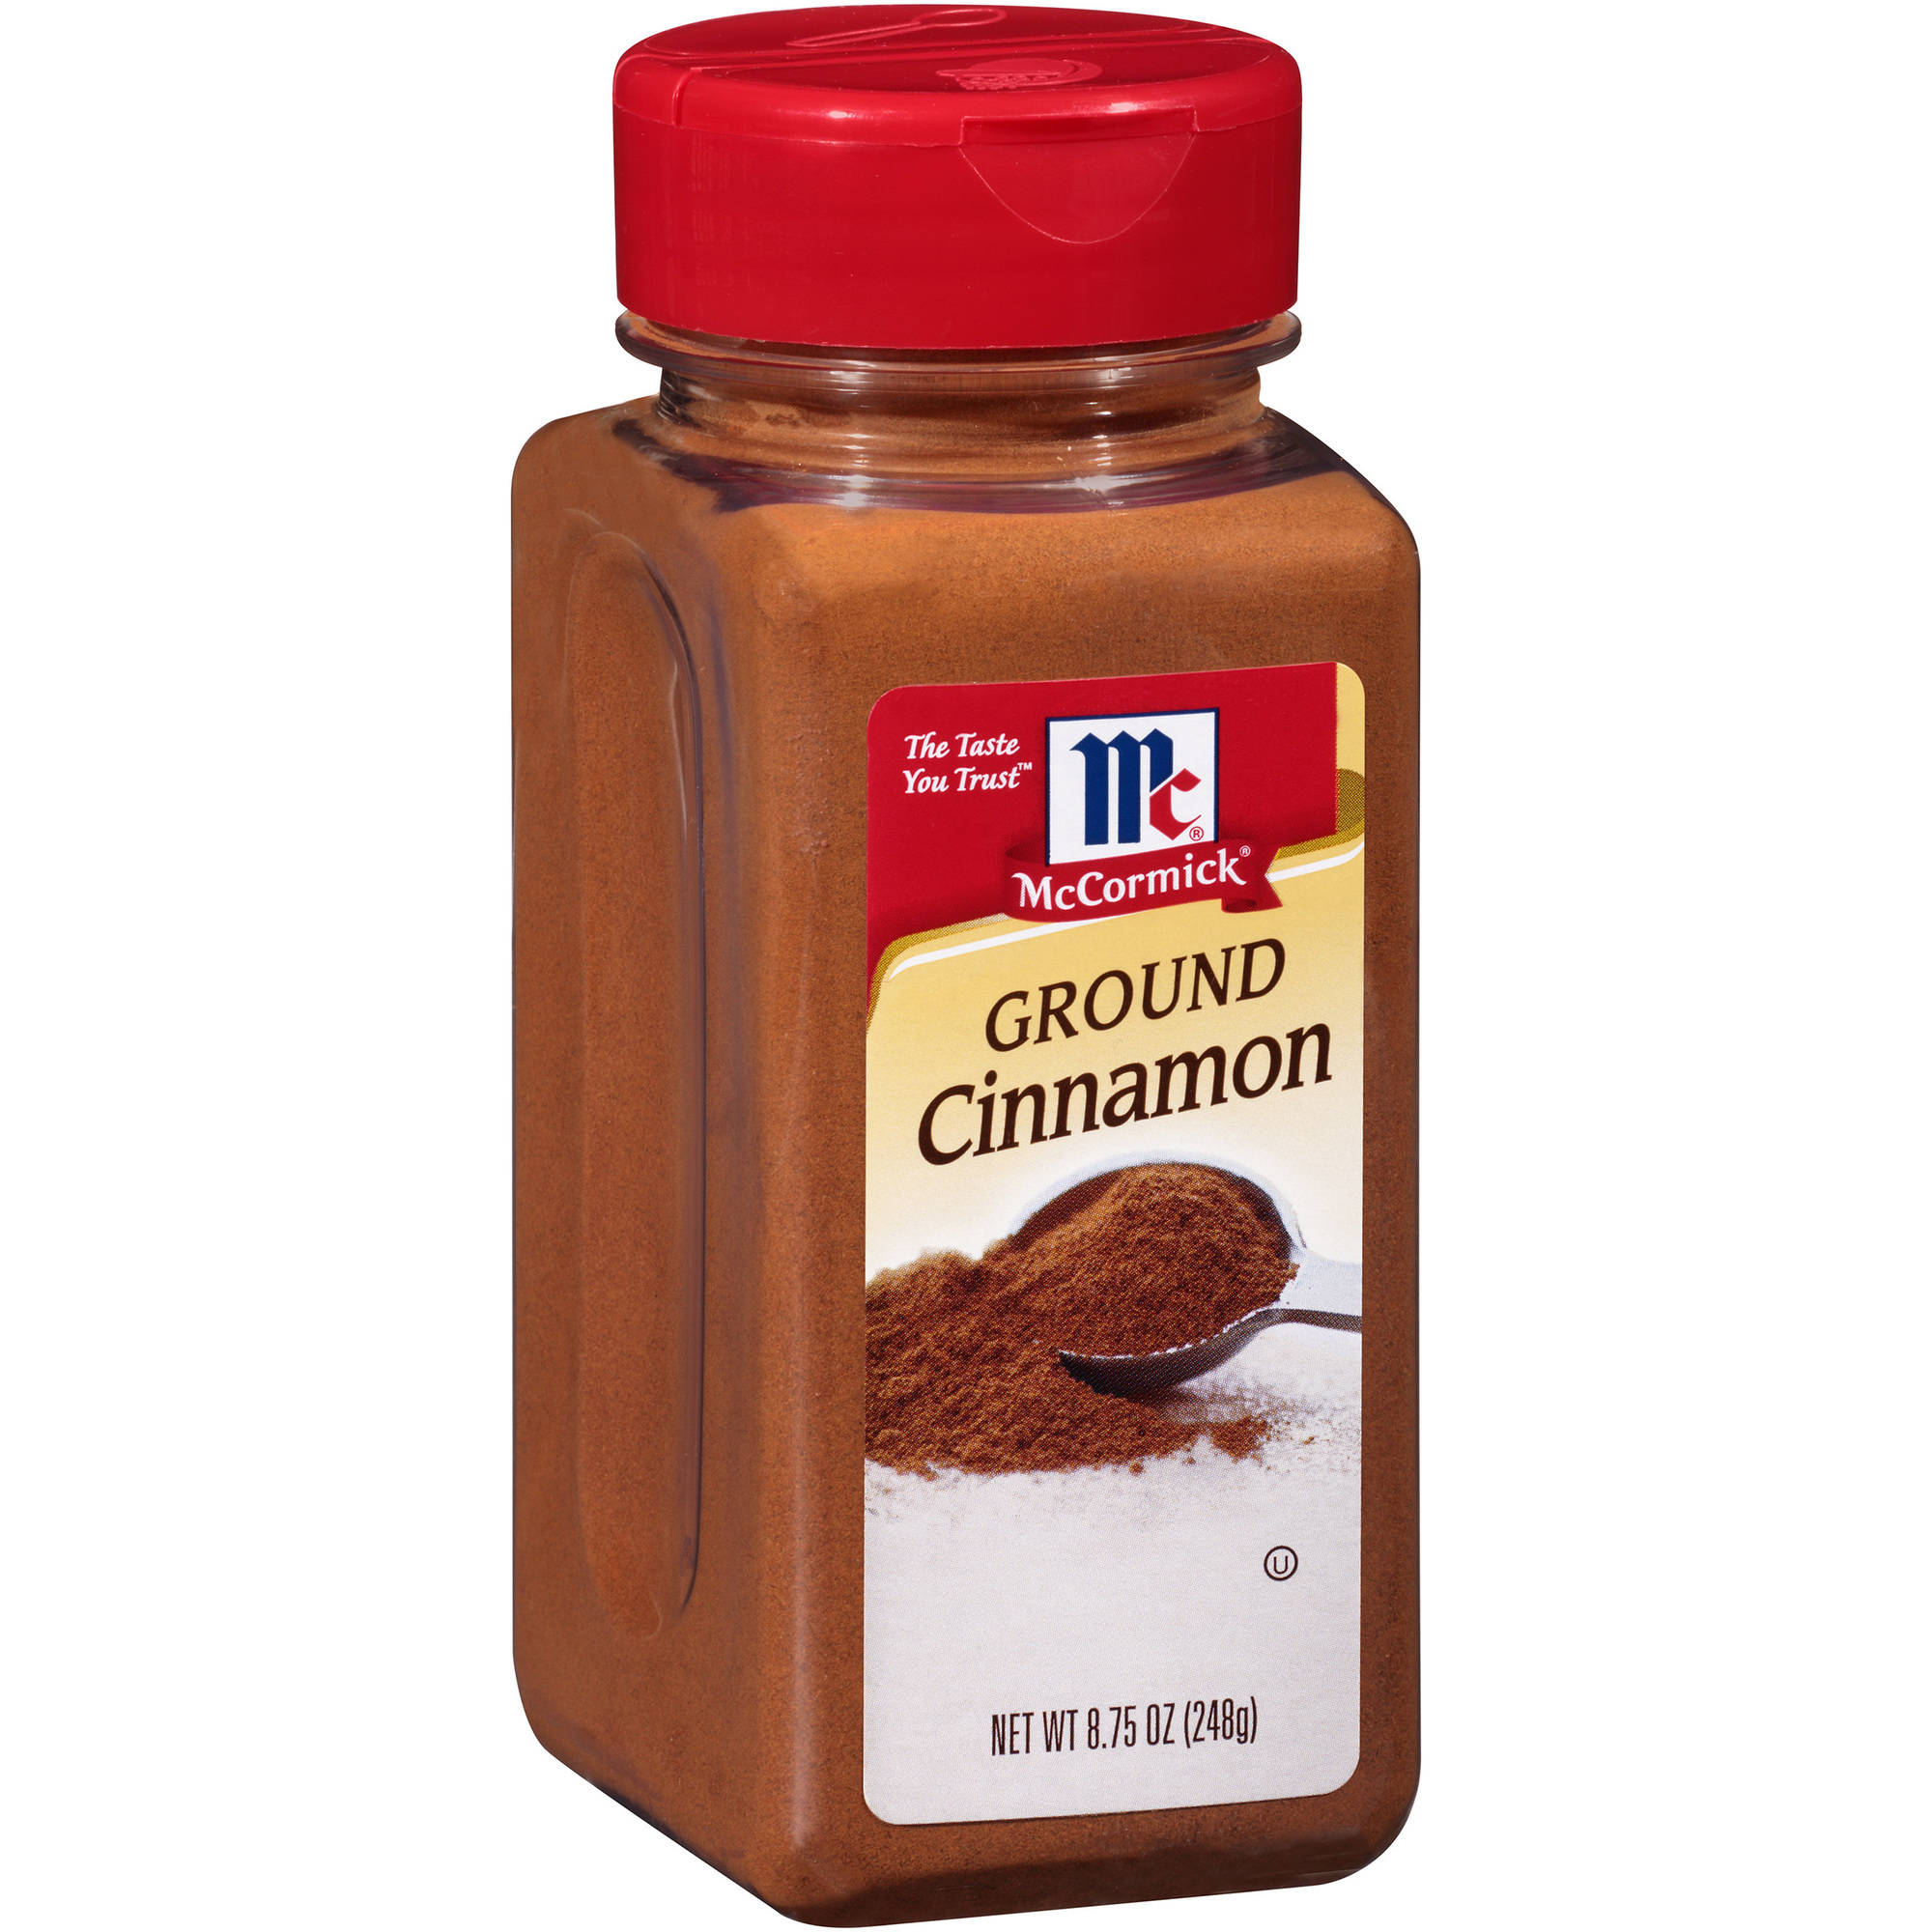 McCormick Ground Cinnamon, 8.75 oz